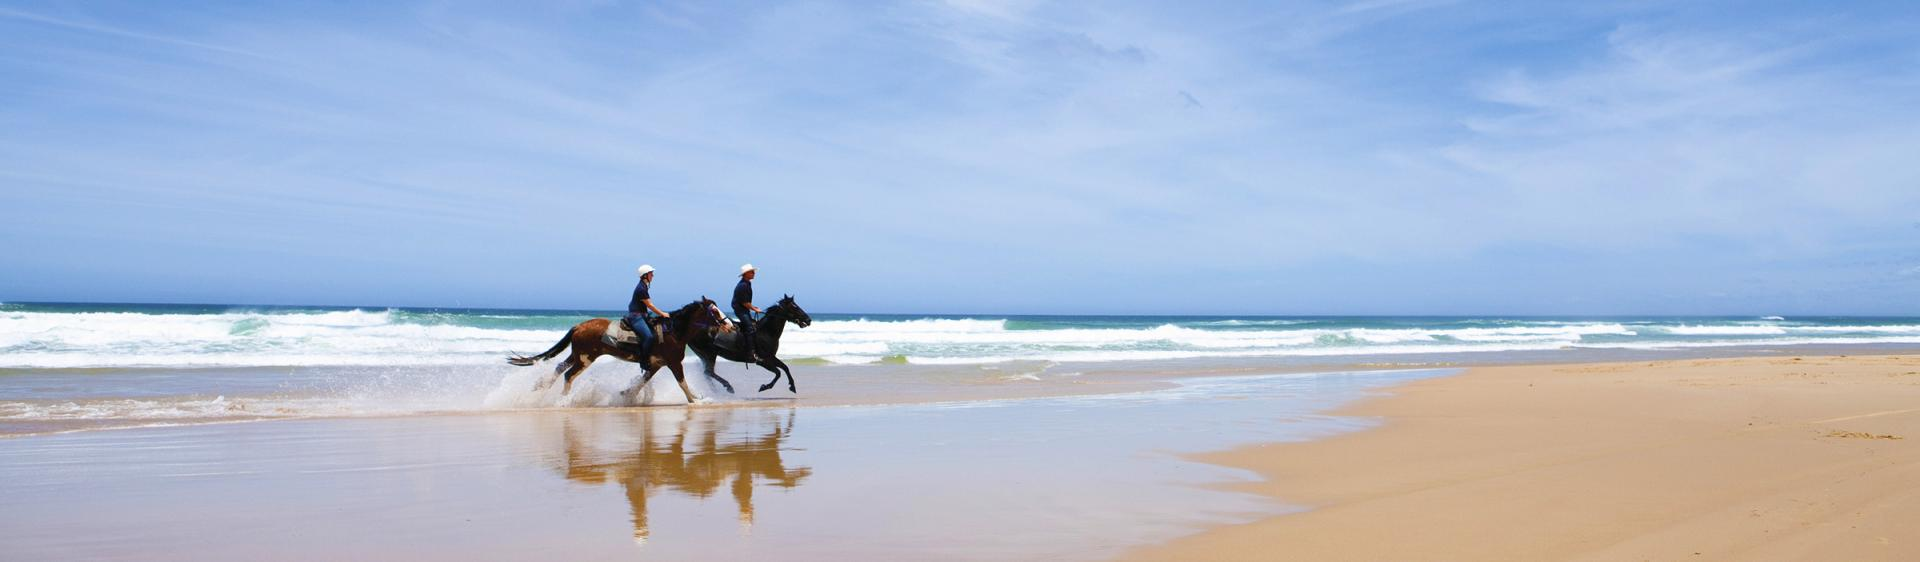 Reiten am Strand, Port Stephens